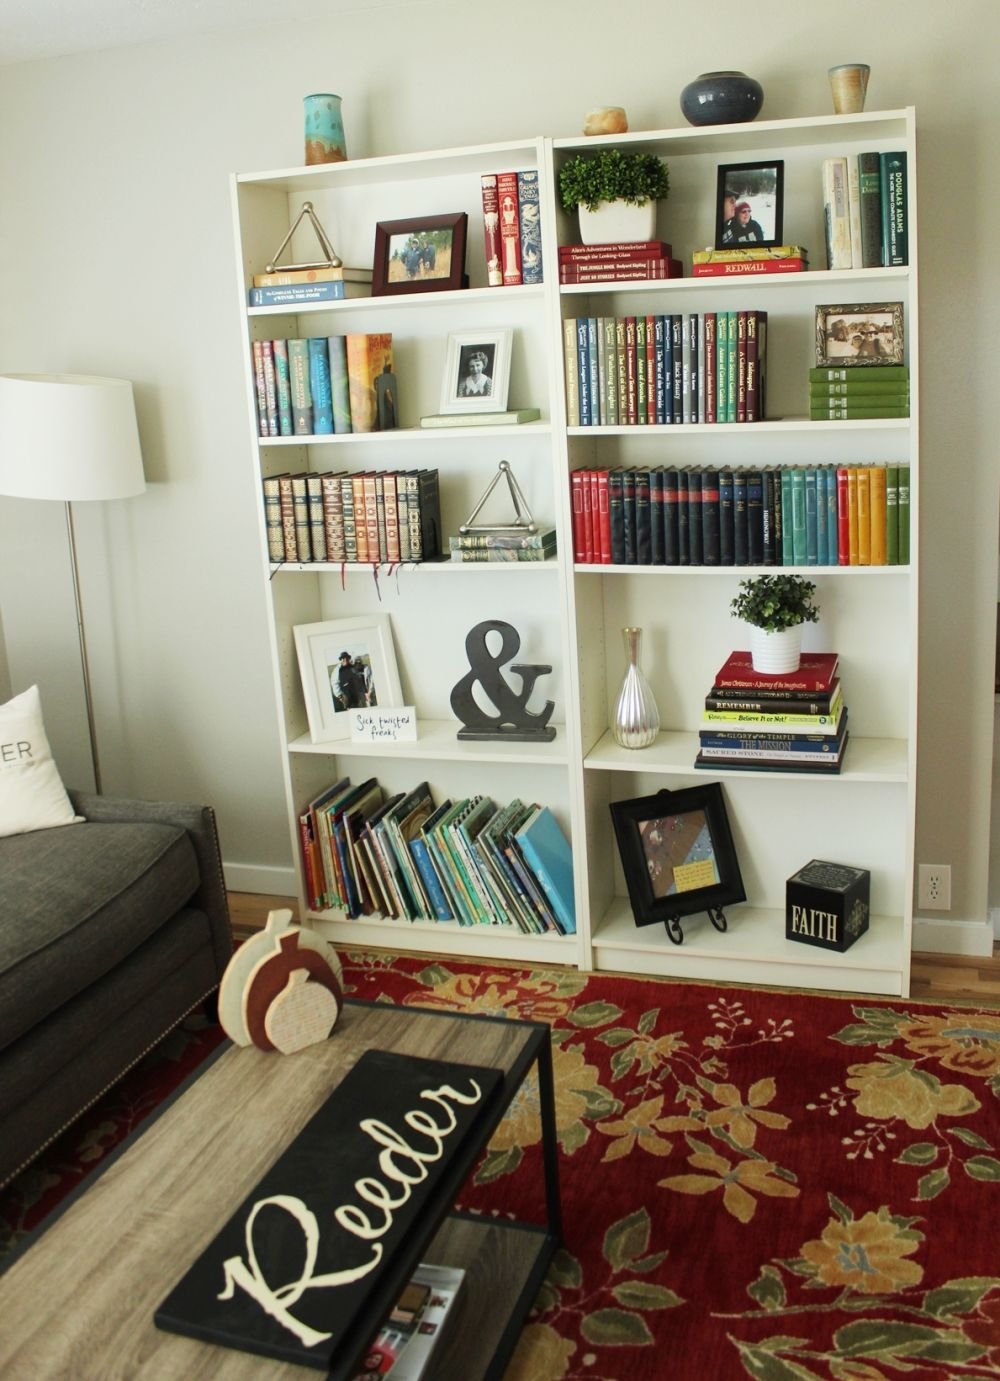 Two contemporary bookshelves